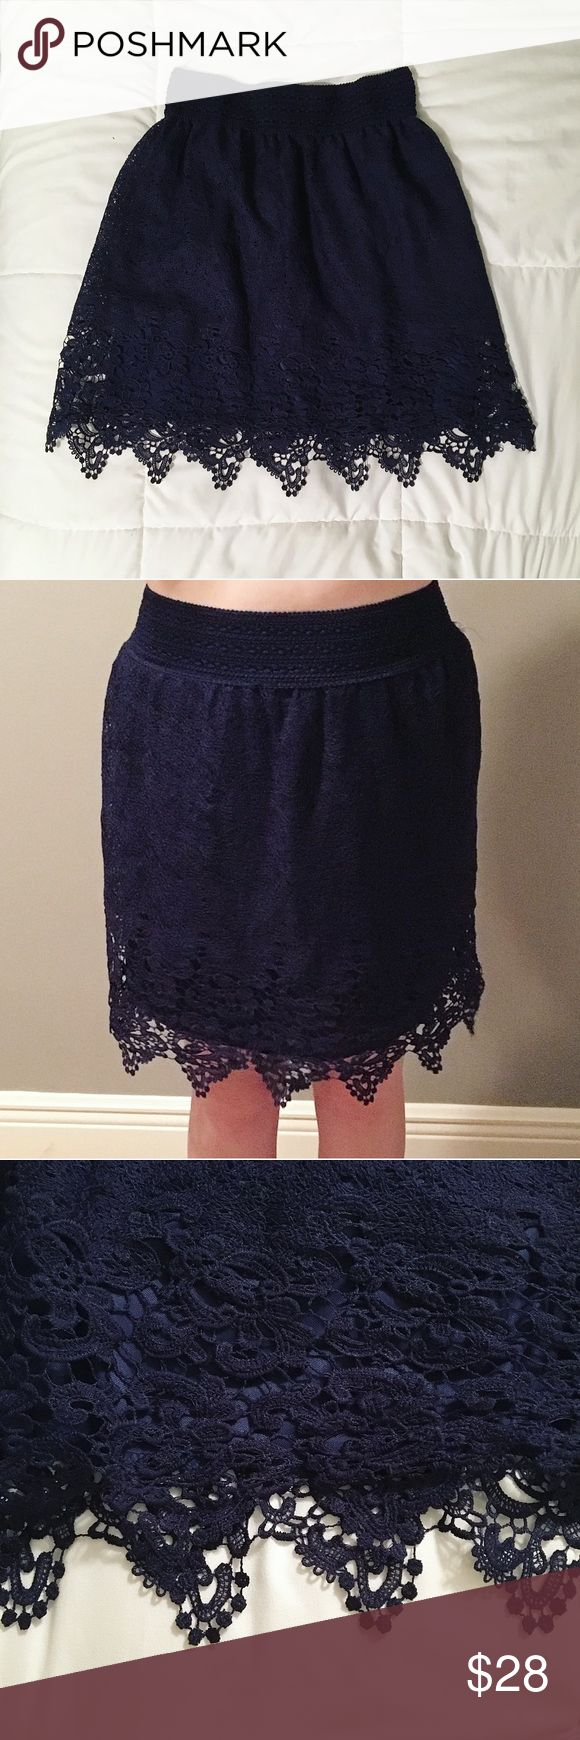 Navy Blue Lace Trim Skirt This skirt is brand new with tags. It has never been worn except for in the photos shown. It's lovely, but I'm just not much of a skirt person and forgot it was even in my closet. It deserves someone who will actually wear it. I'd love an offer! Francesca's Collections Skirts